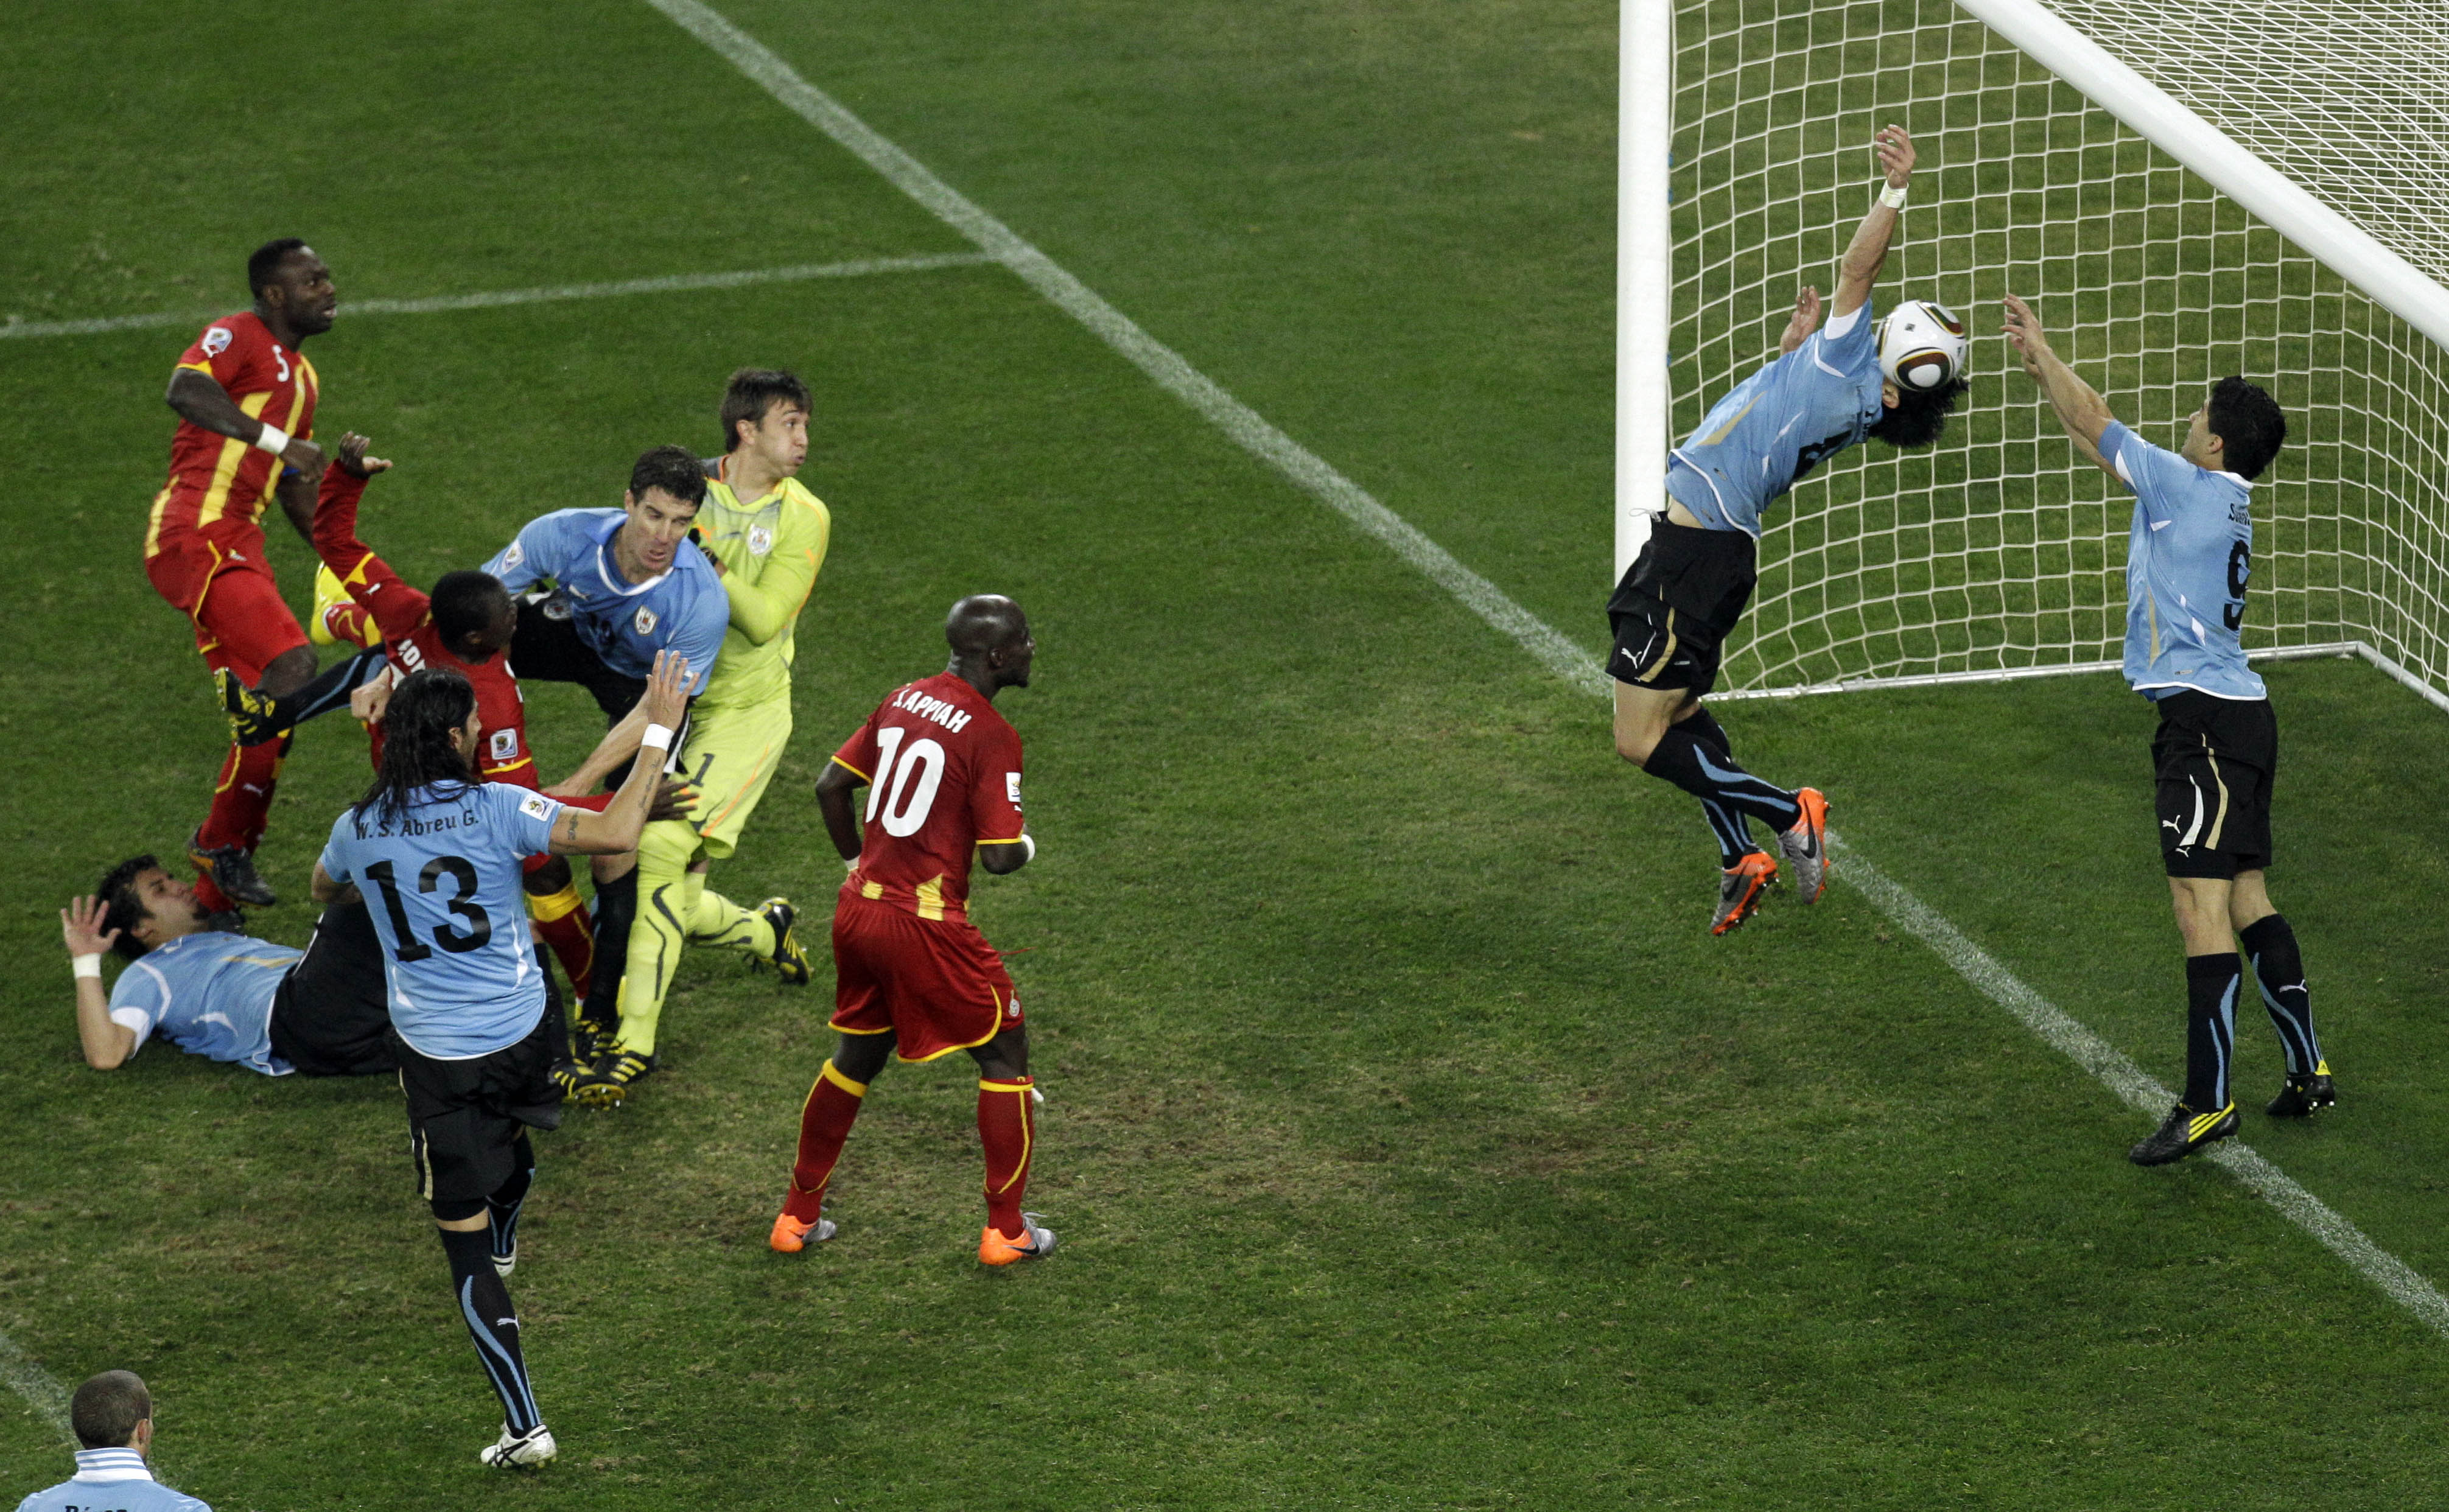 Uruguay's Luis Suarez, right, reaches his hands to the ball to give away a penalty during the World Cup quarterfinal soccer match between Uruguay and Ghana at Soccer City in Johannesburg, South Africa, Friday, July 2, 2010. (AP Photo/Themba Hadebe)